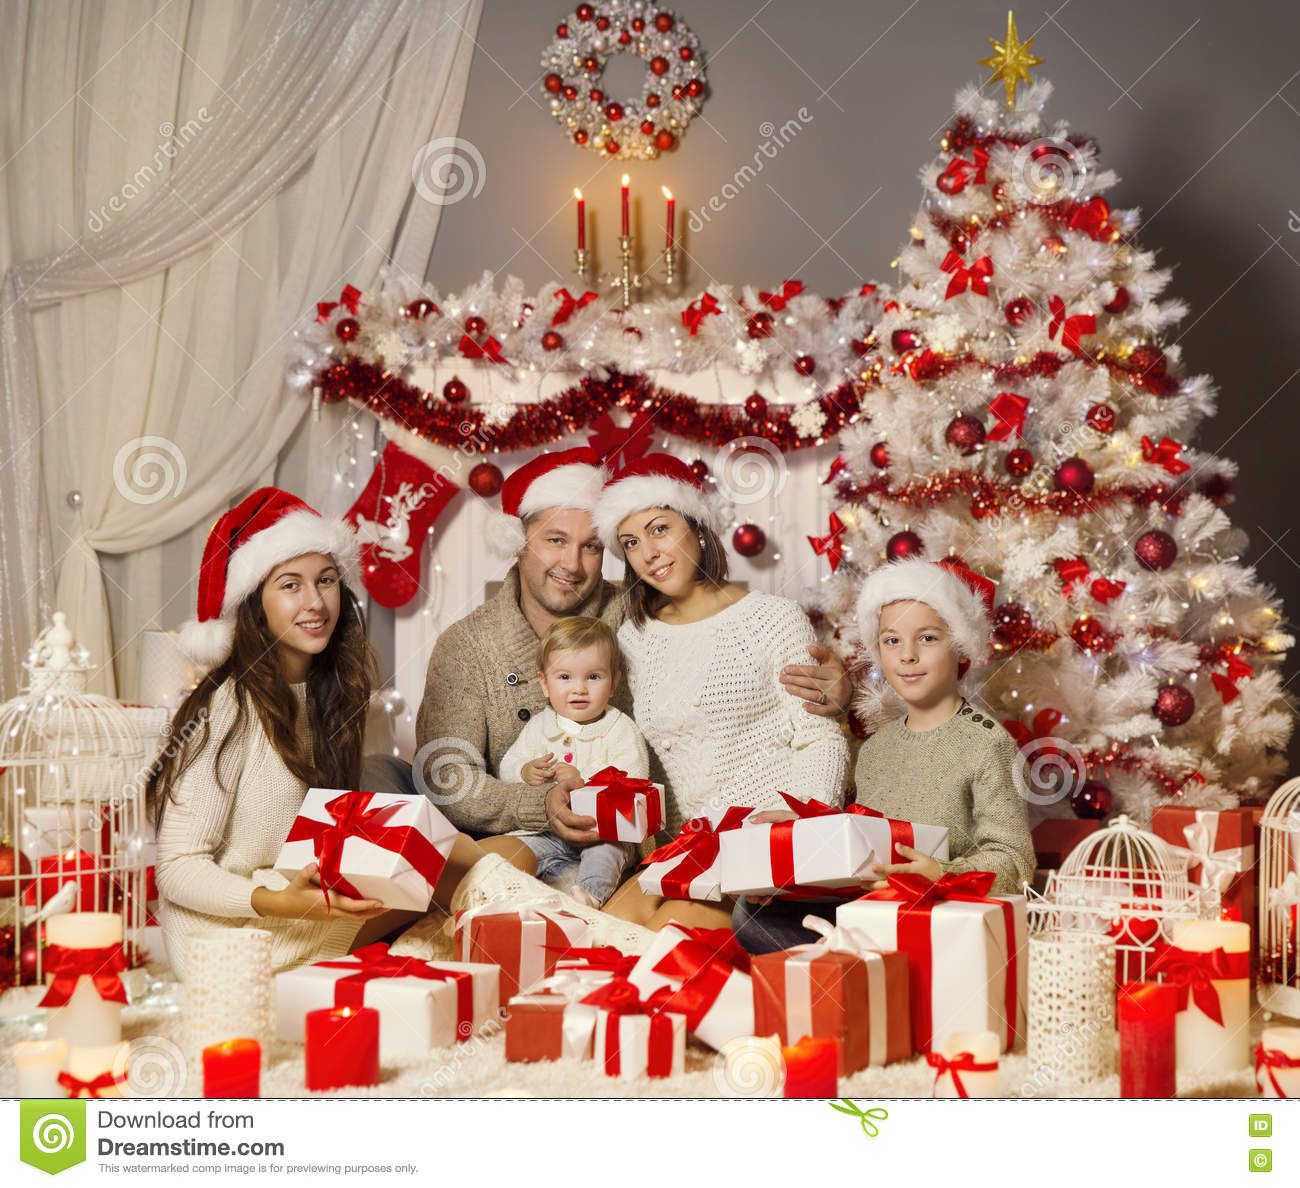 Family tree gifts for christmas